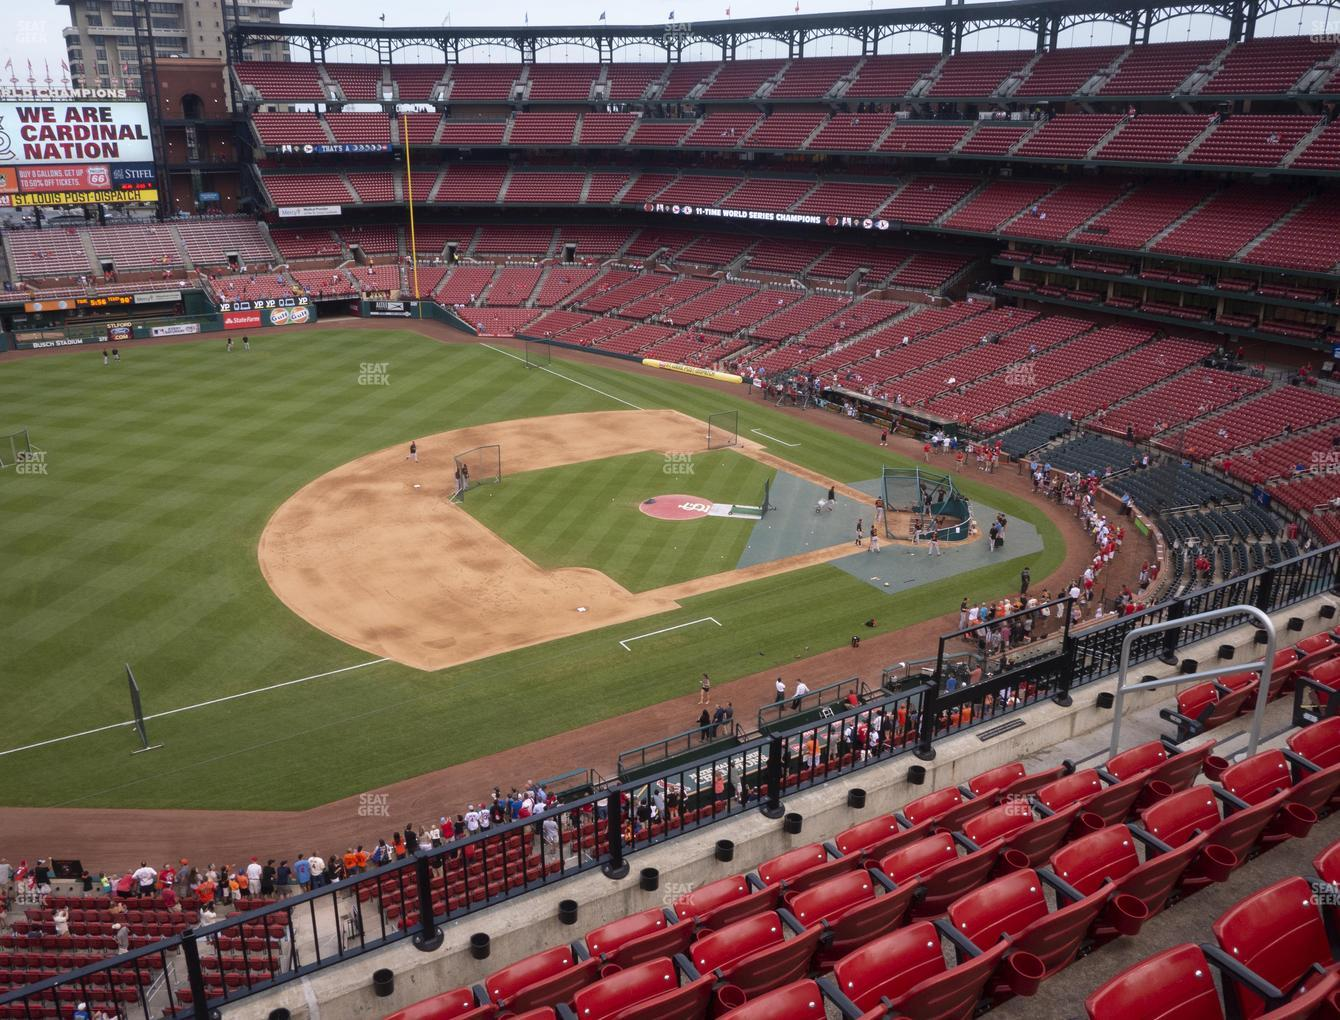 St. Louis Cardinals at Busch Stadium Third Base Pavilion 359 View